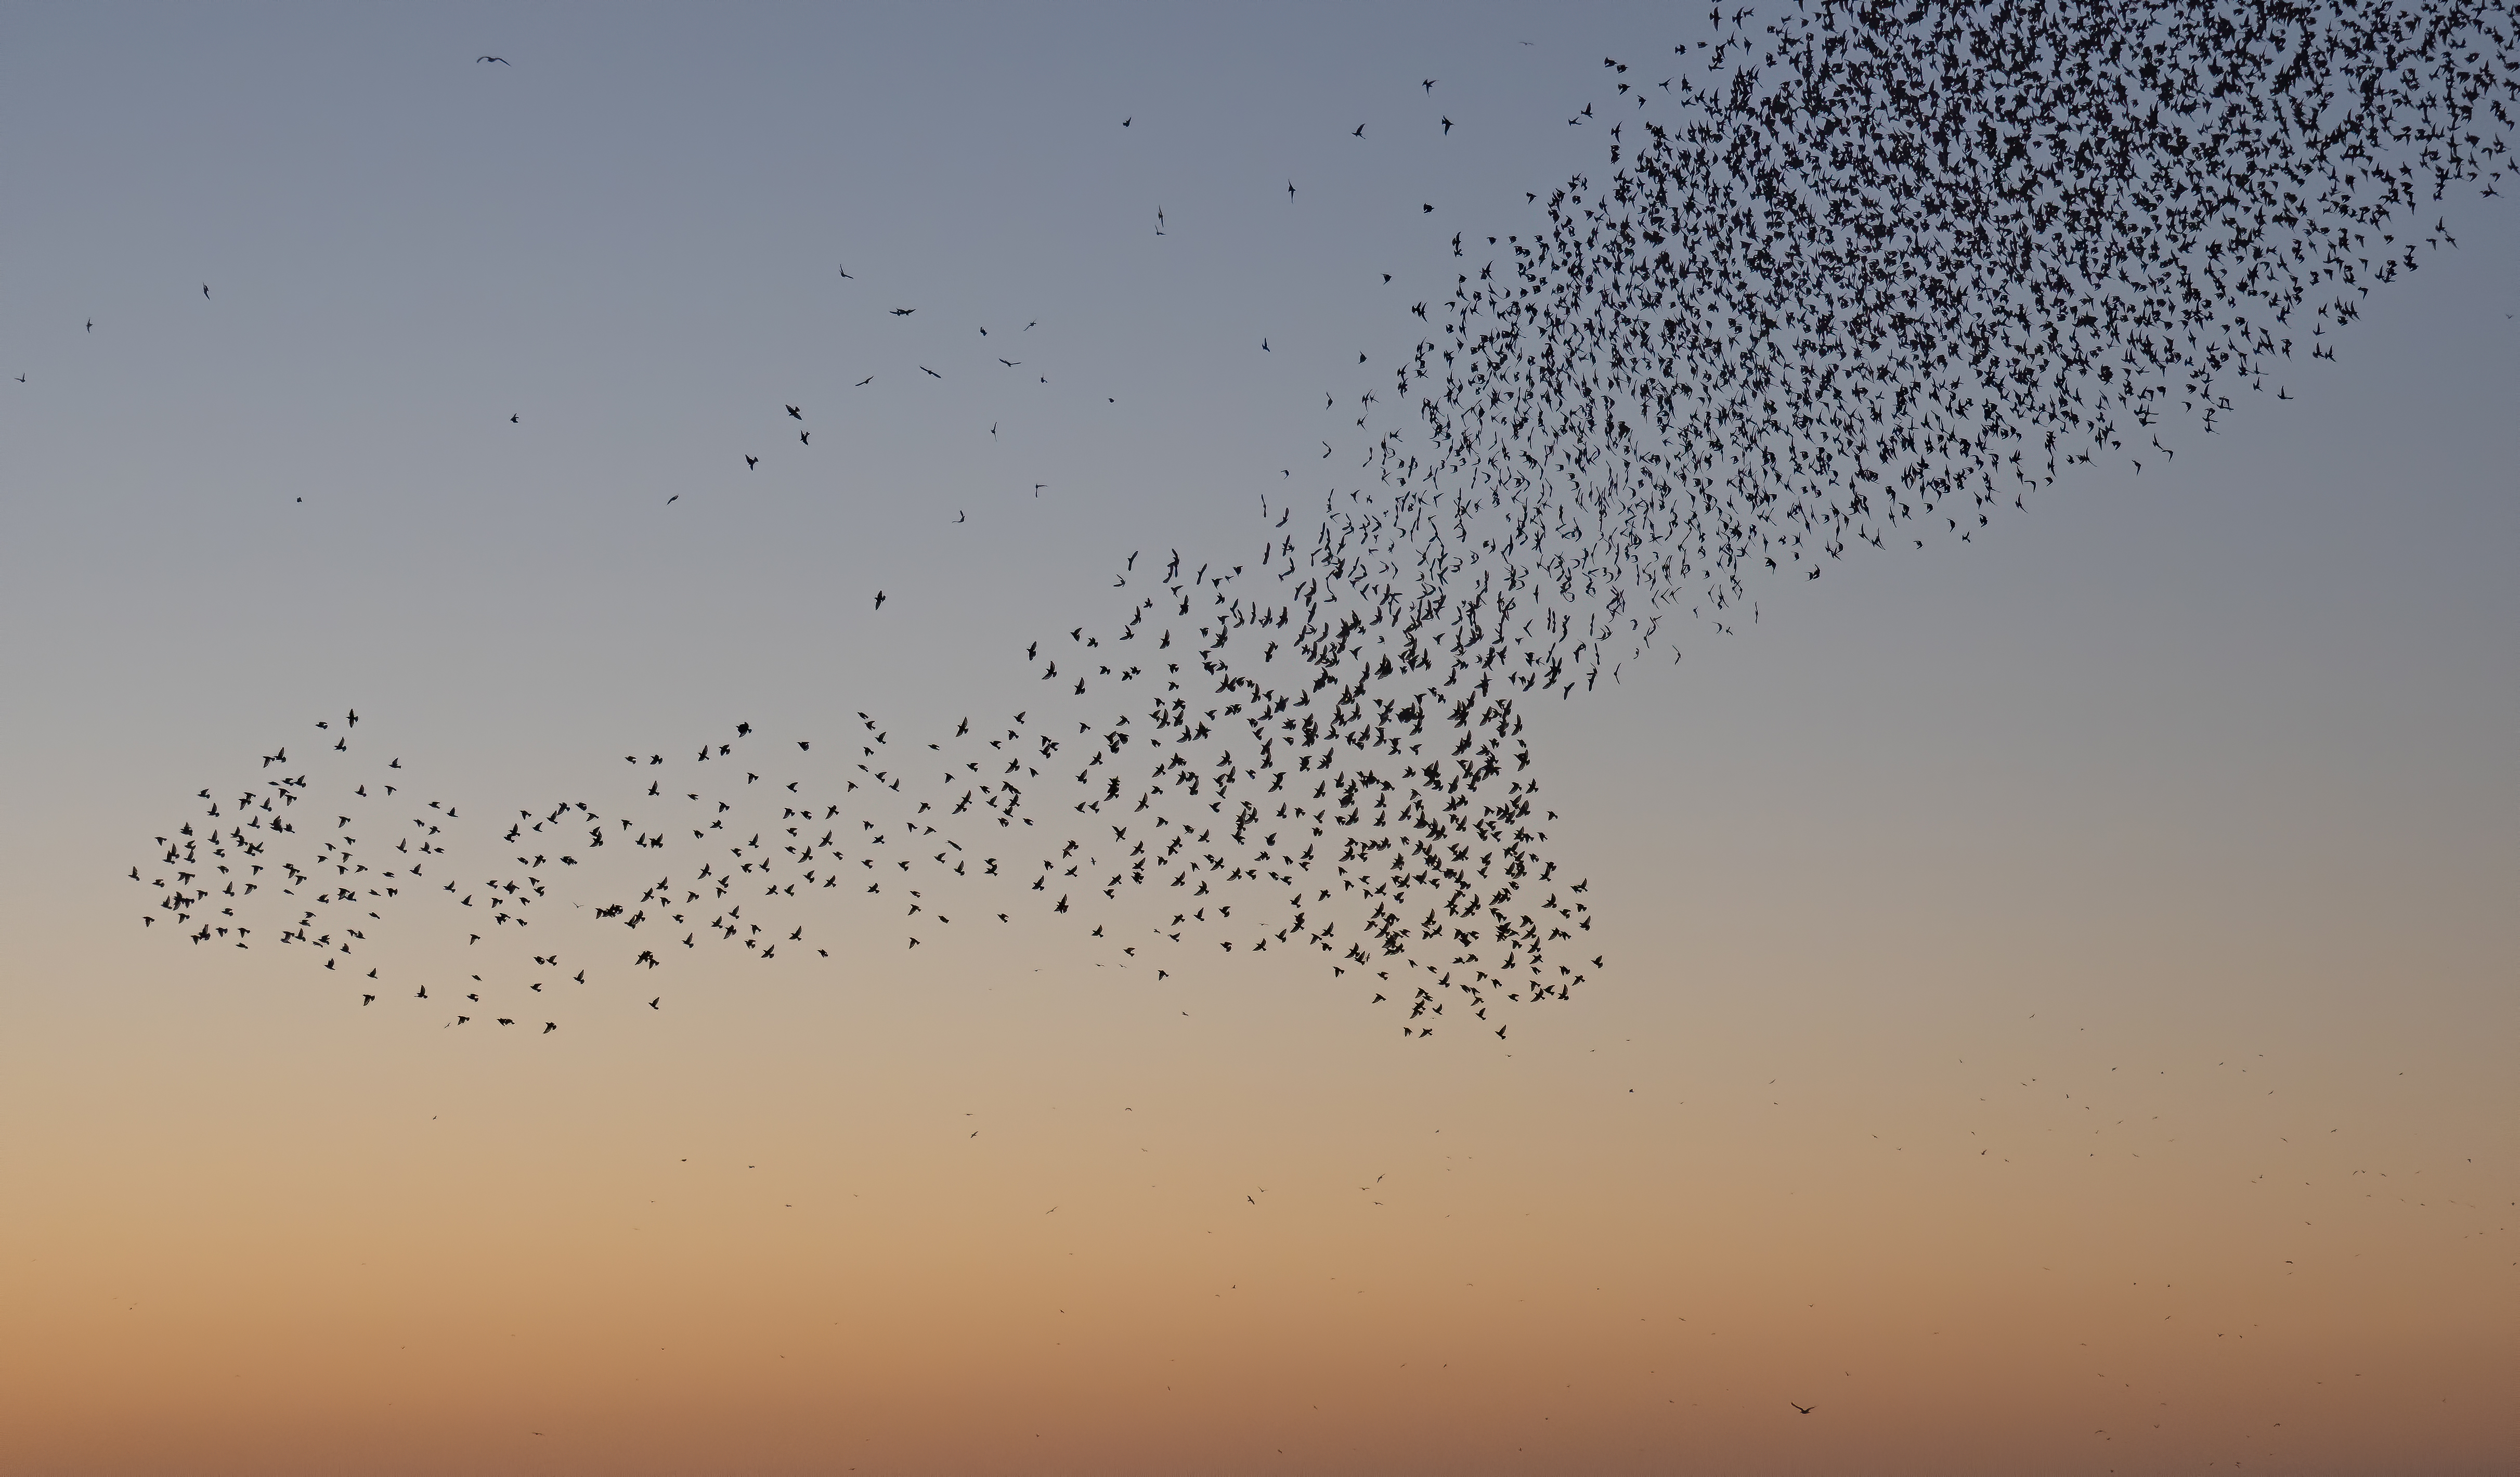 Photograph of a starling murmuration at sunset